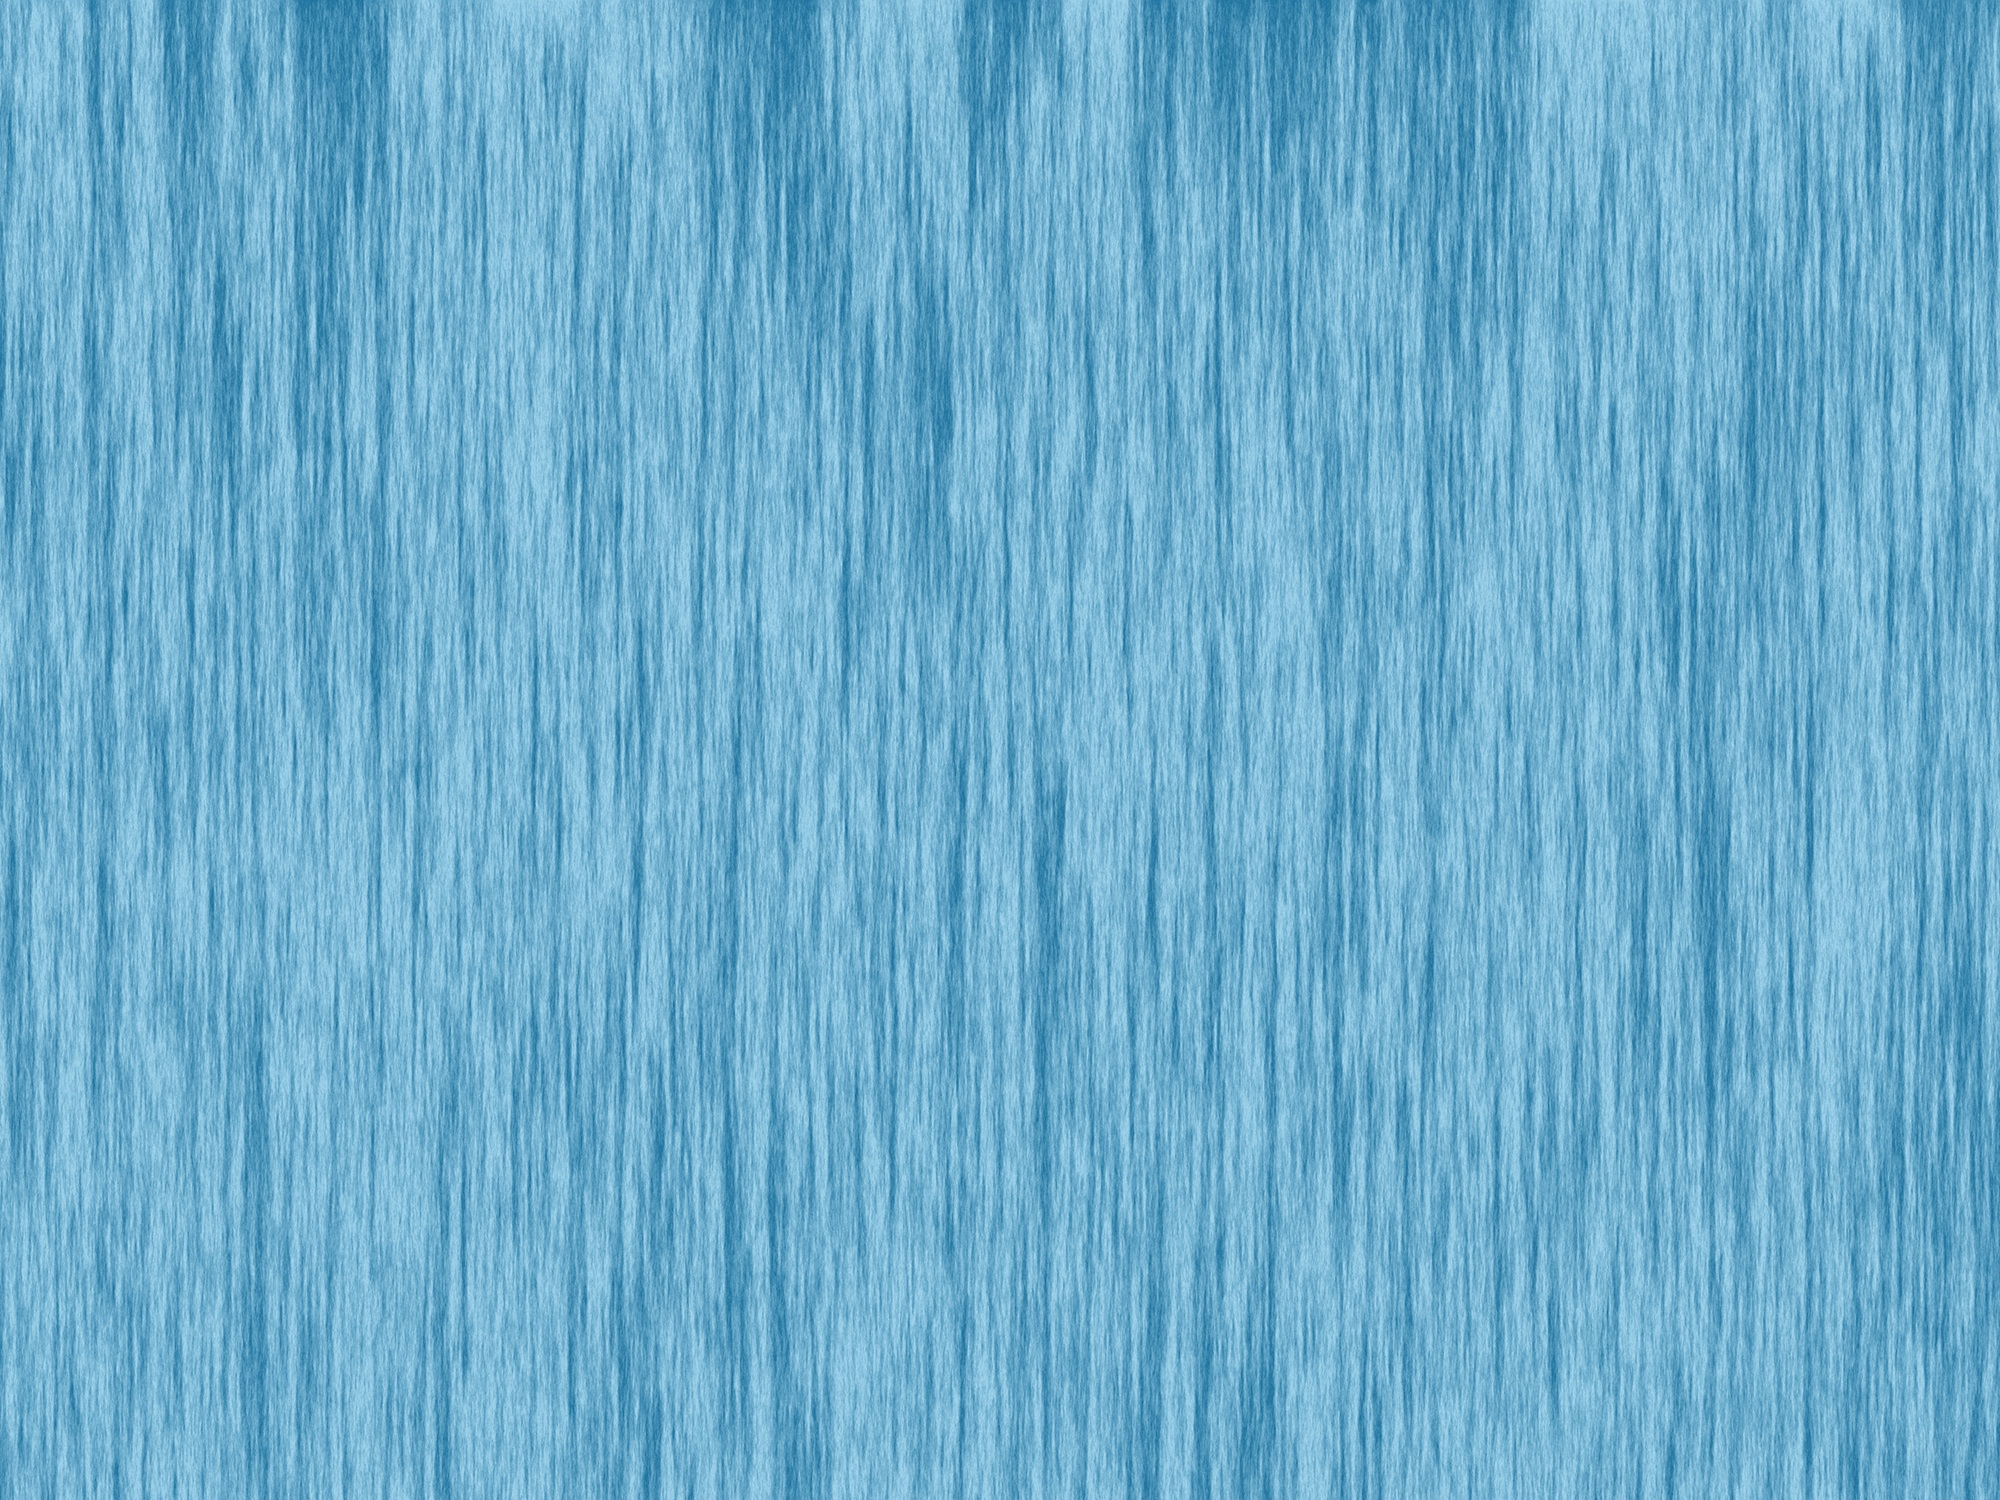 Textured Iphone Wallpaper 1000 Great Blue Background Photos 183 Pexels 183 Free Stock